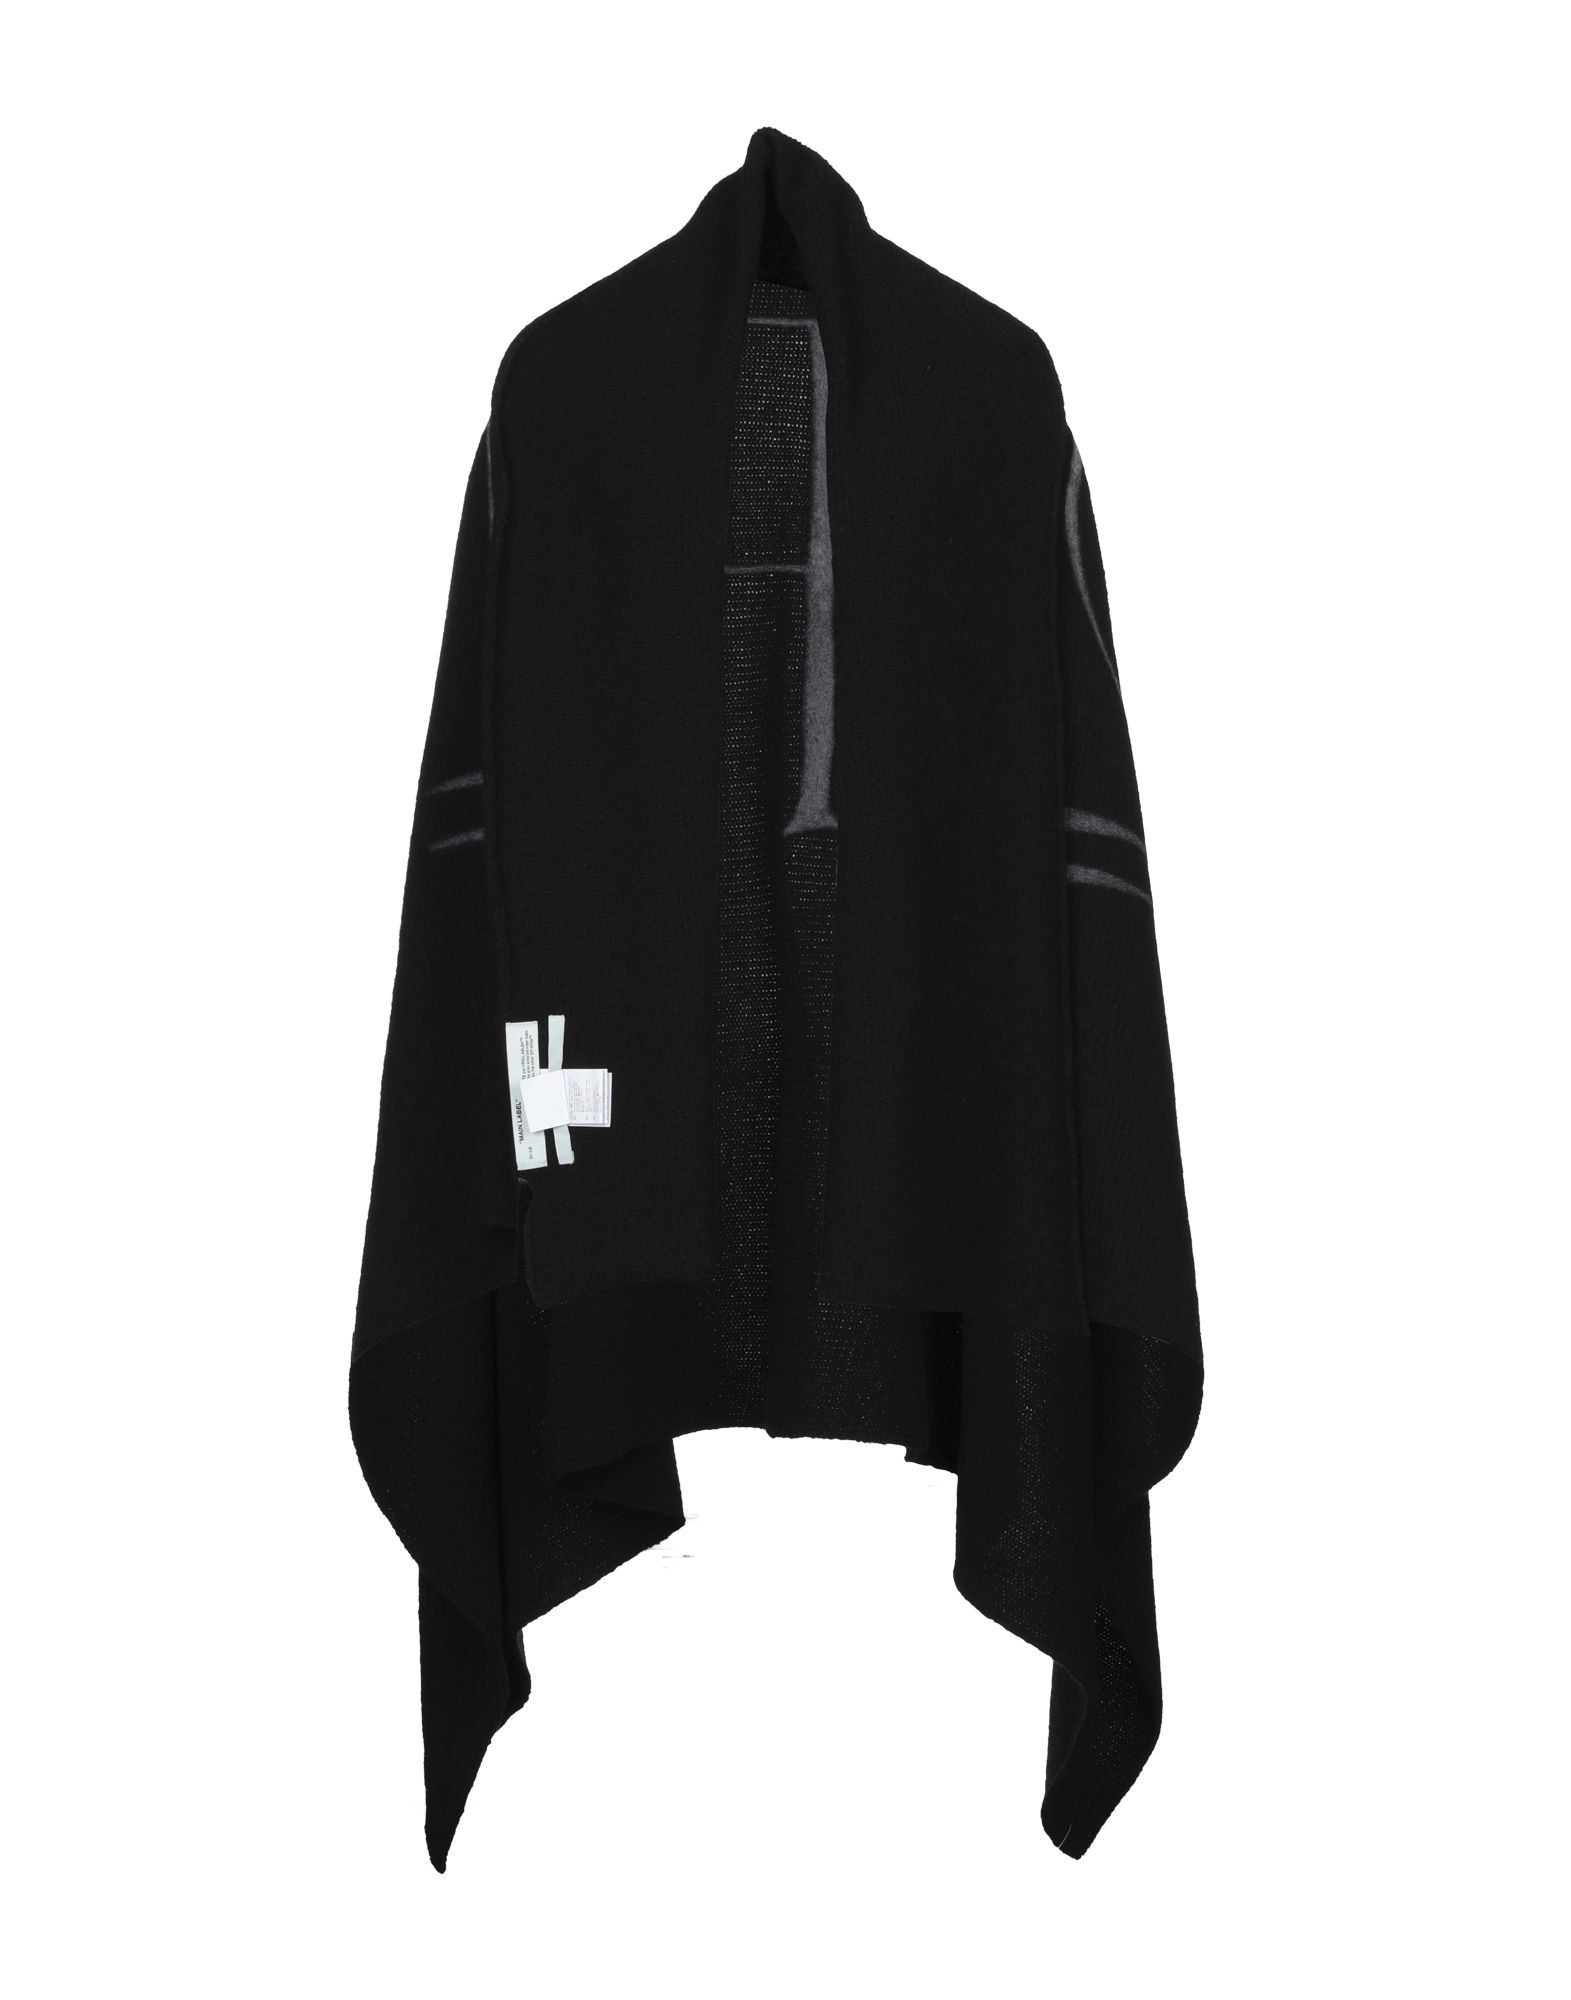 OFF-WHITE™ Capes & ponchos. knitted, logo, solid color, single-breasted, no pockets, deep neckline, 3/4 length sleeves, unlined. 40% Polyester, 30% Wool, 30% Acrylic